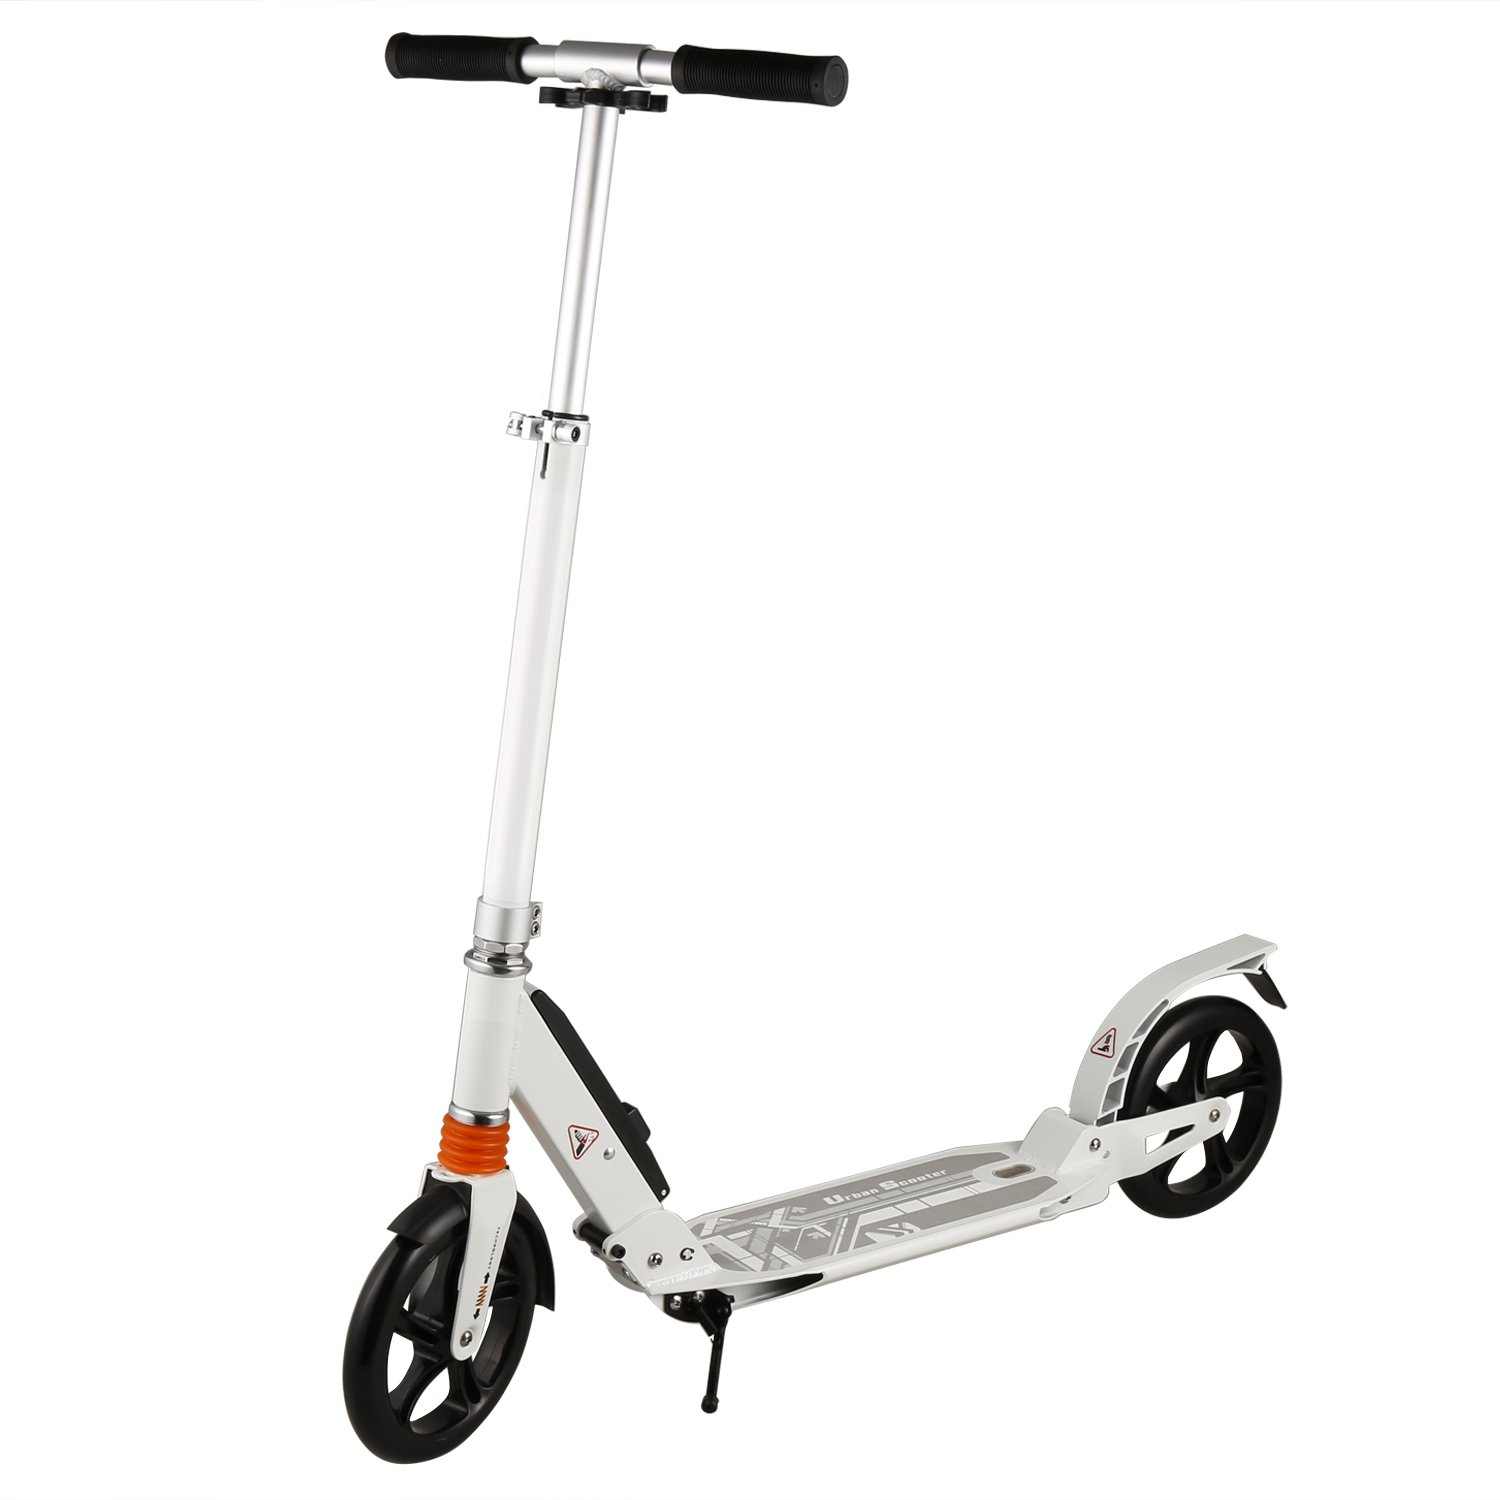 Adult City Commuter Scooter Folding Kick Scooter with 2 Large 200mm Wheels and Dual Spring Comfort Suspension 3 Levels Adjustable Height Strong Aluminum Frame Design for Teens Kids 10+